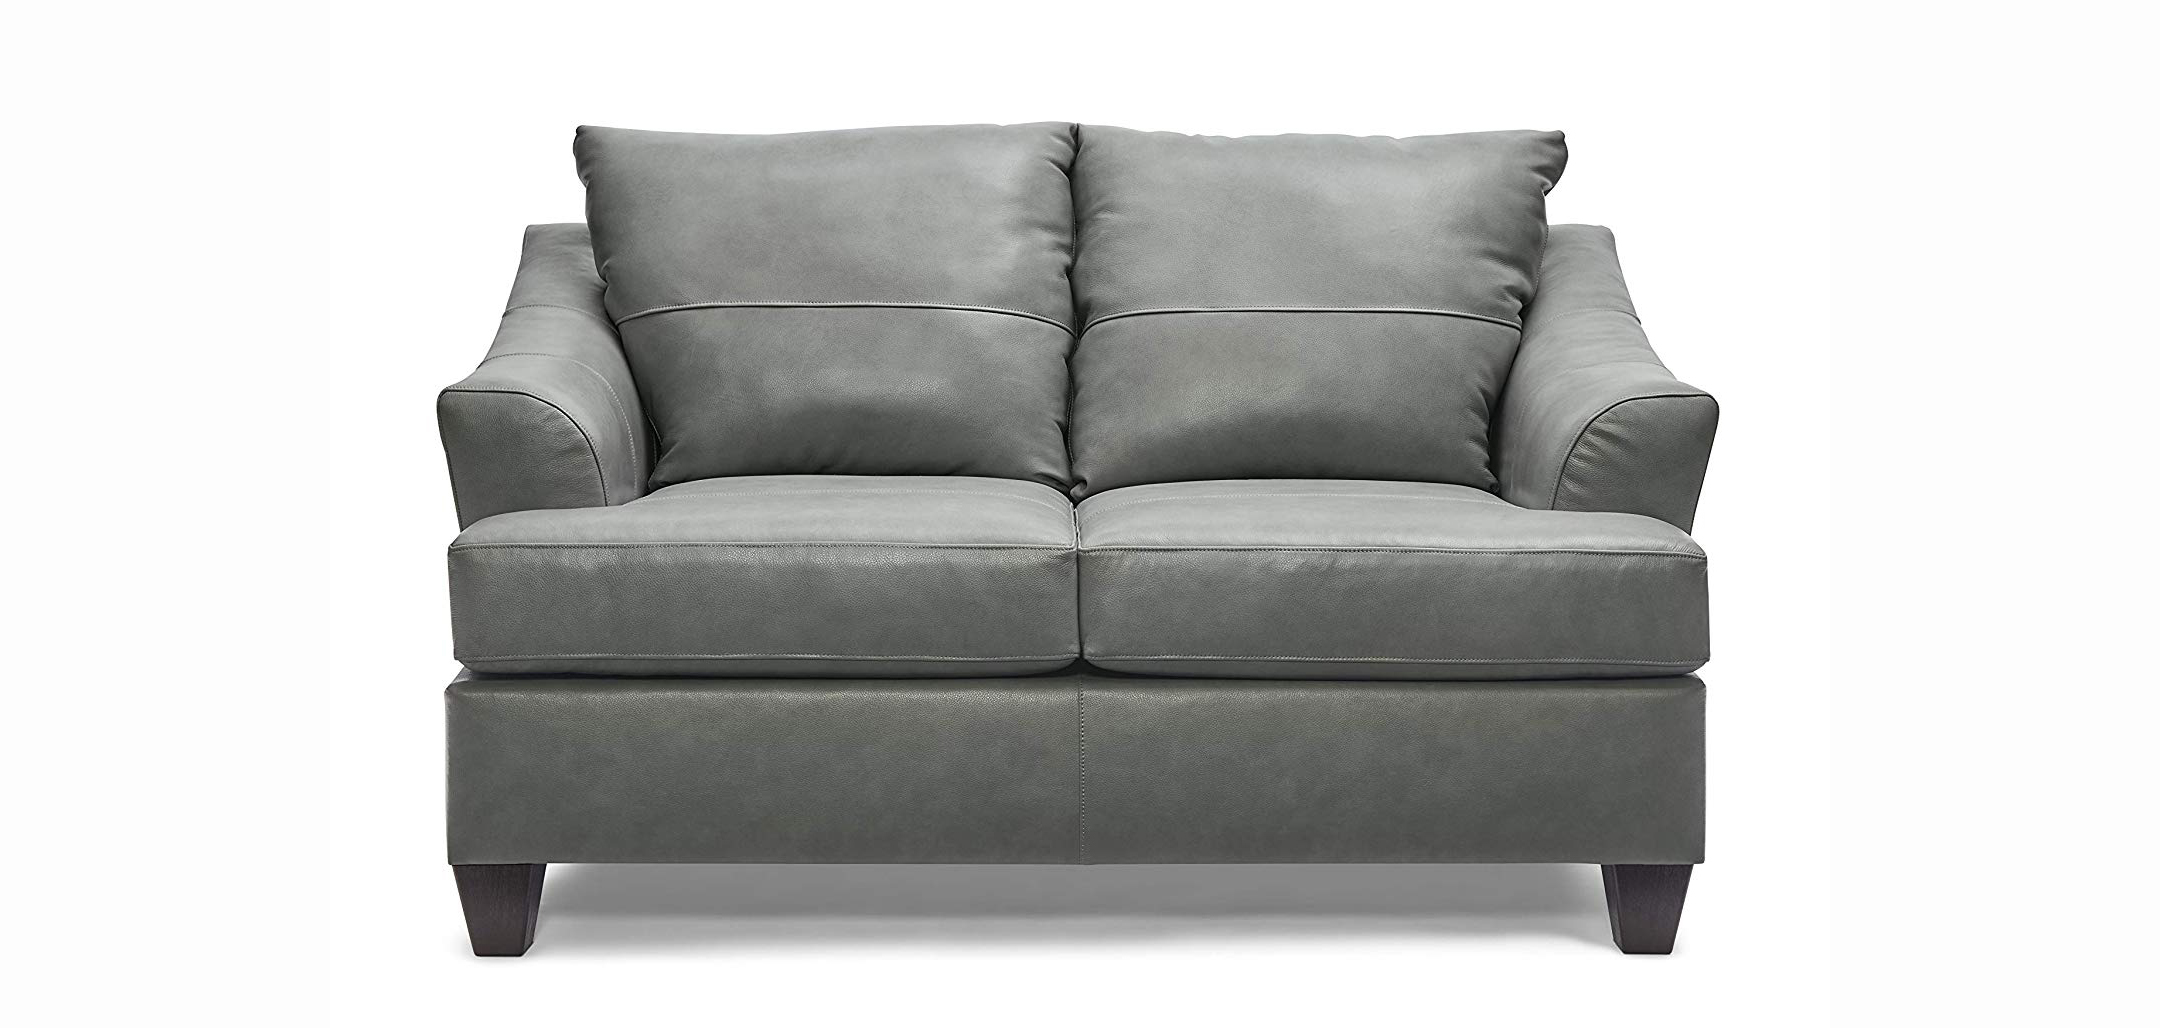 UN2063 Soft Touch Silver (Loveseat)